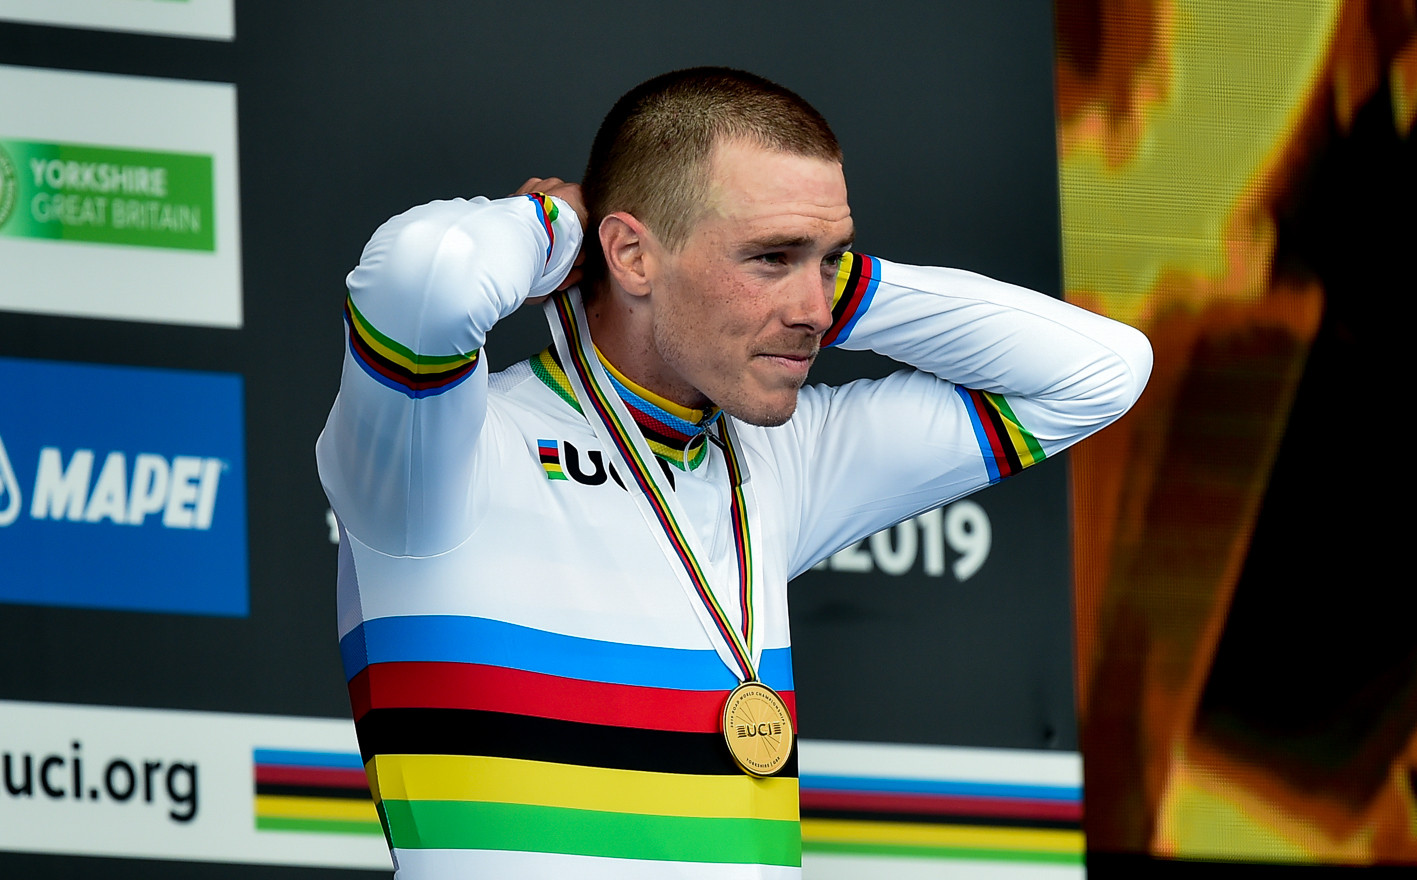 Rohan Dennis (AUS) takes his second consecutive timetrial world title at the 2019 Road World Championships in Yorkshire.